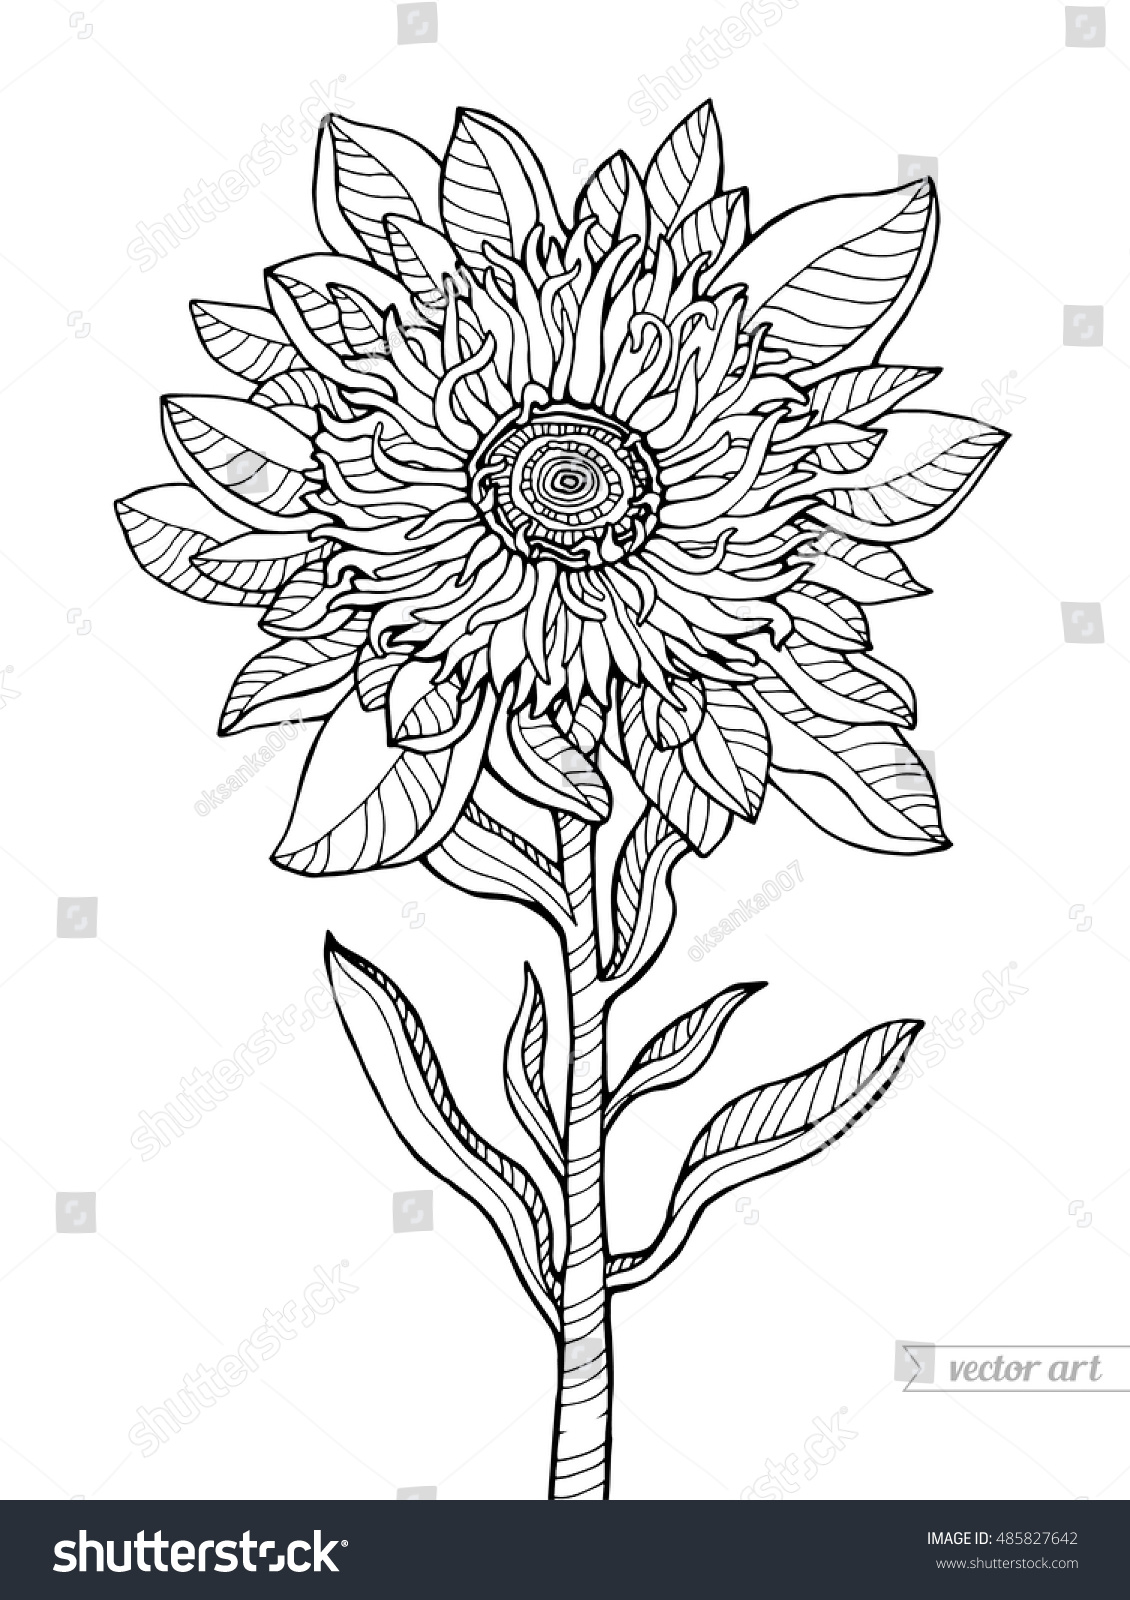 Wonderful Flower Vector Illustration Coloring Book Page For Adult Black And White Line